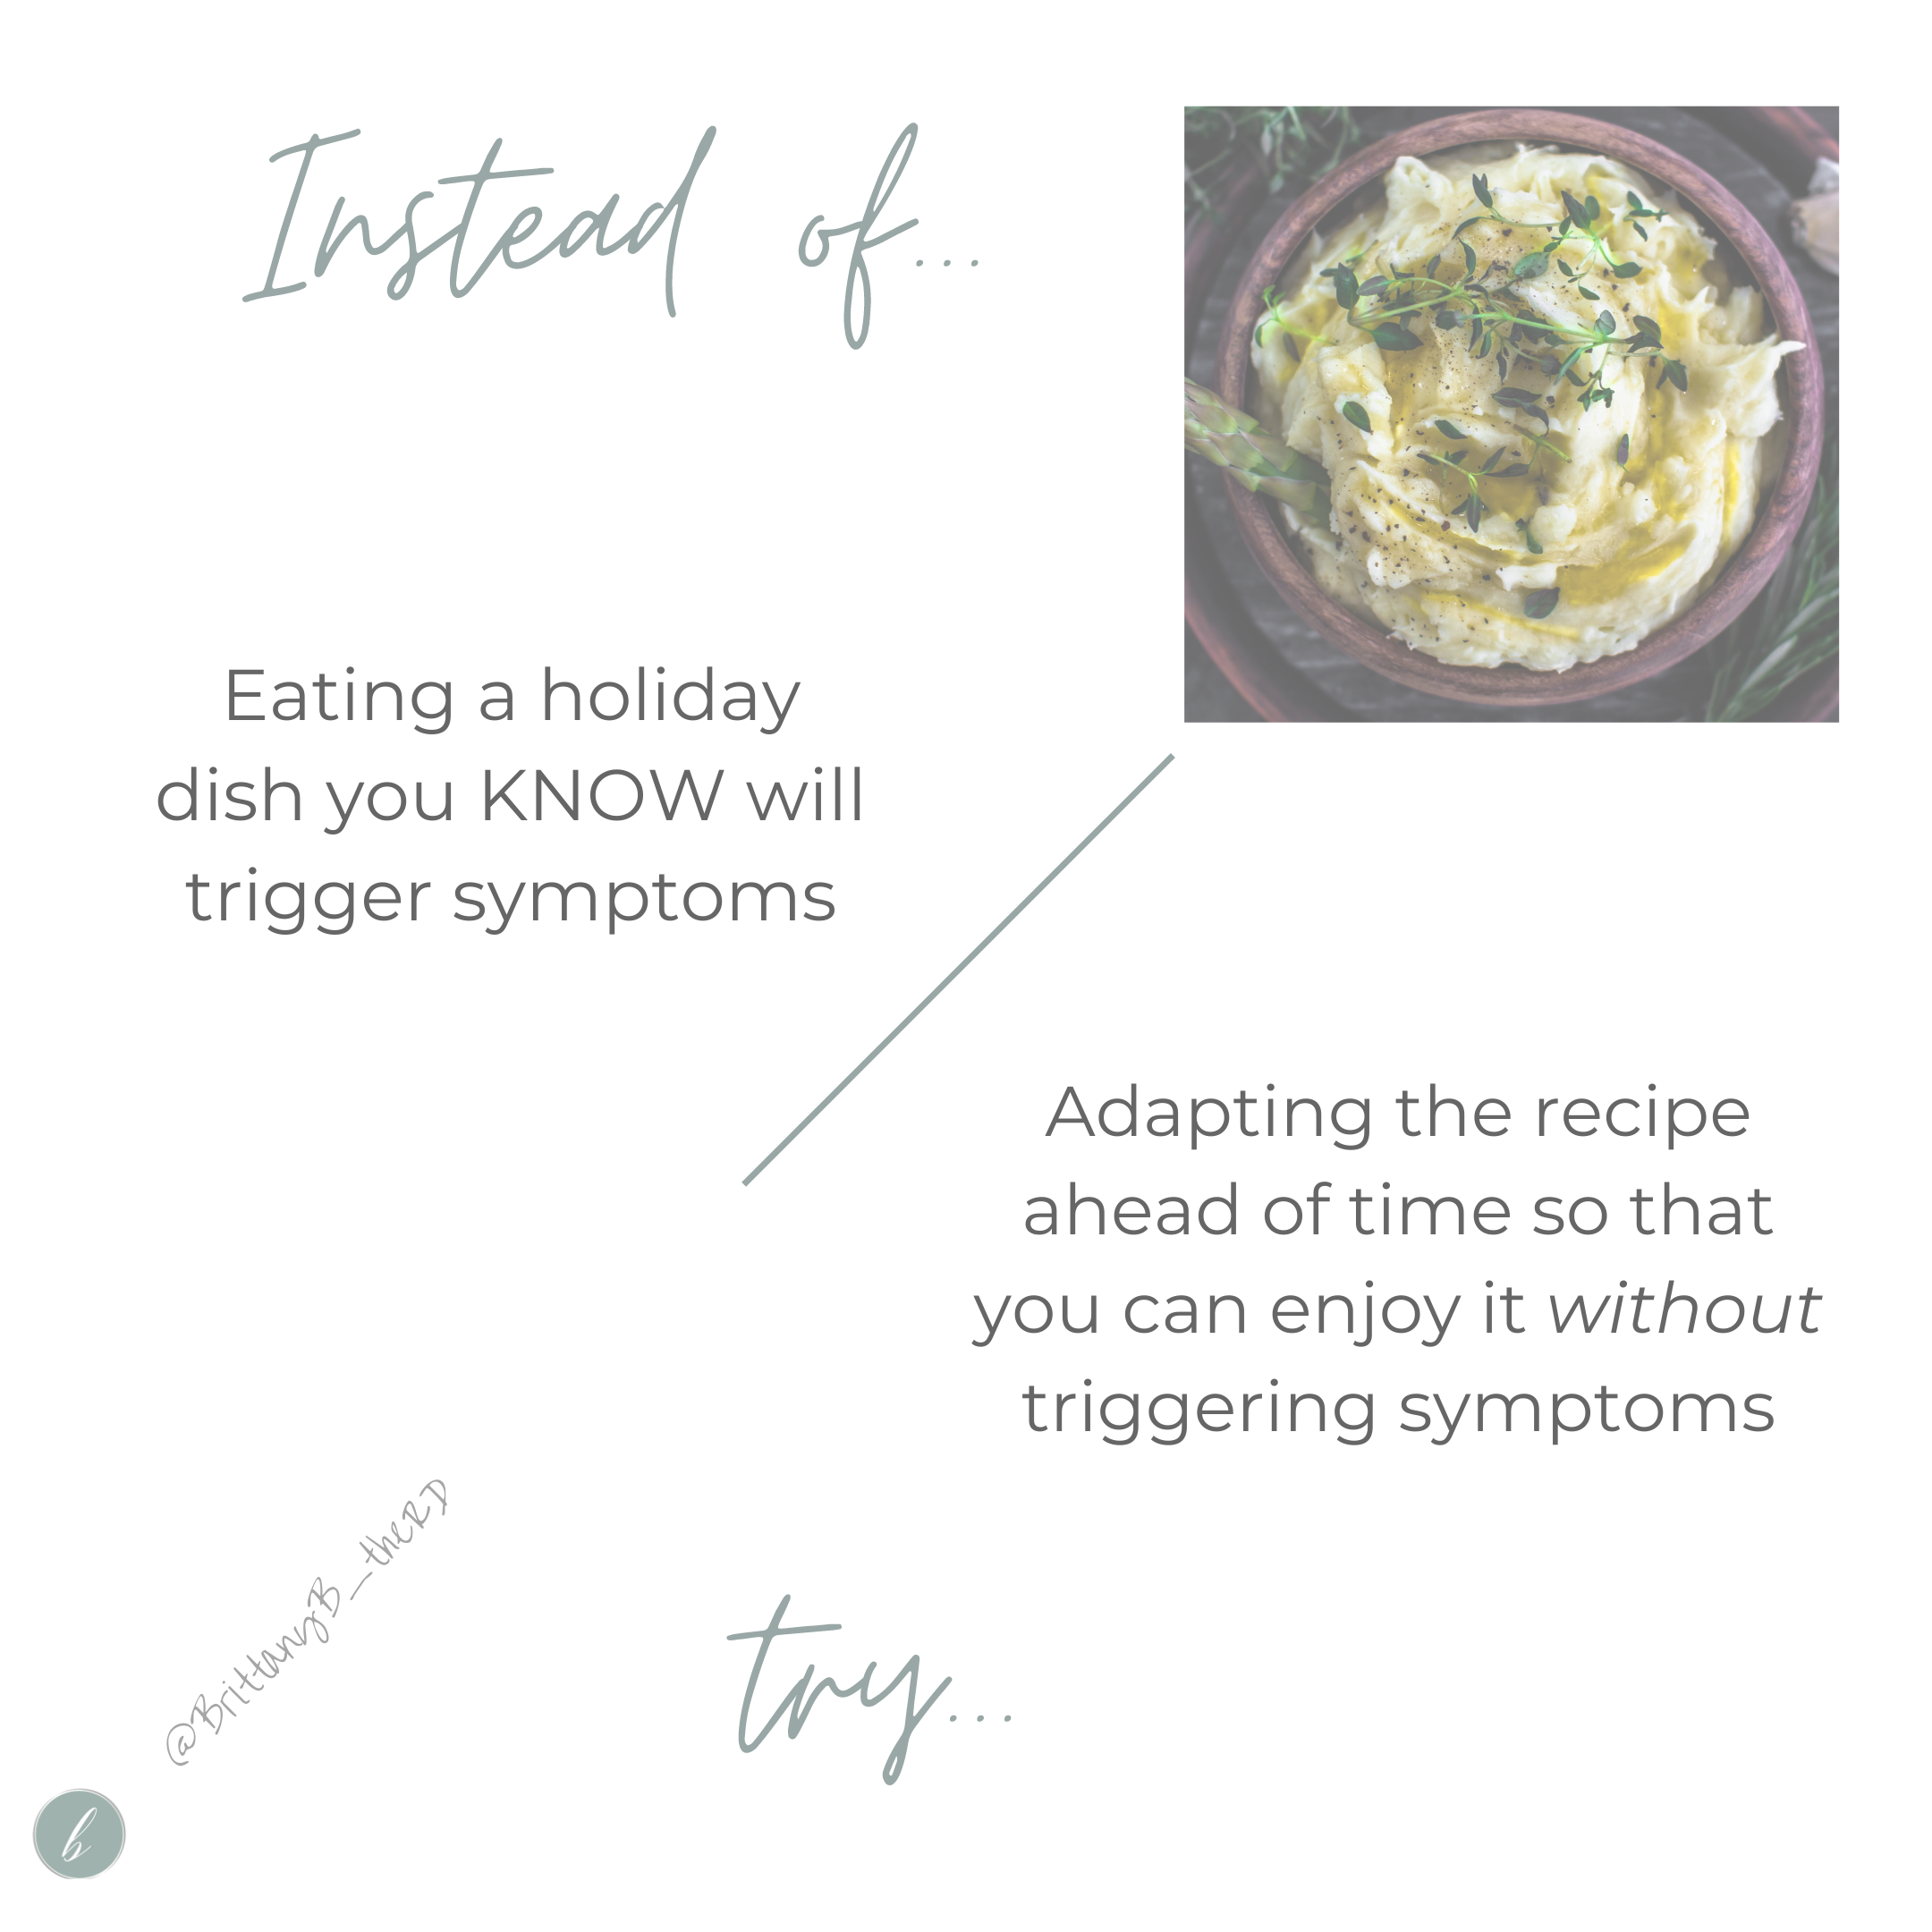 Adapting a holiday recipe for crohn's or colitis